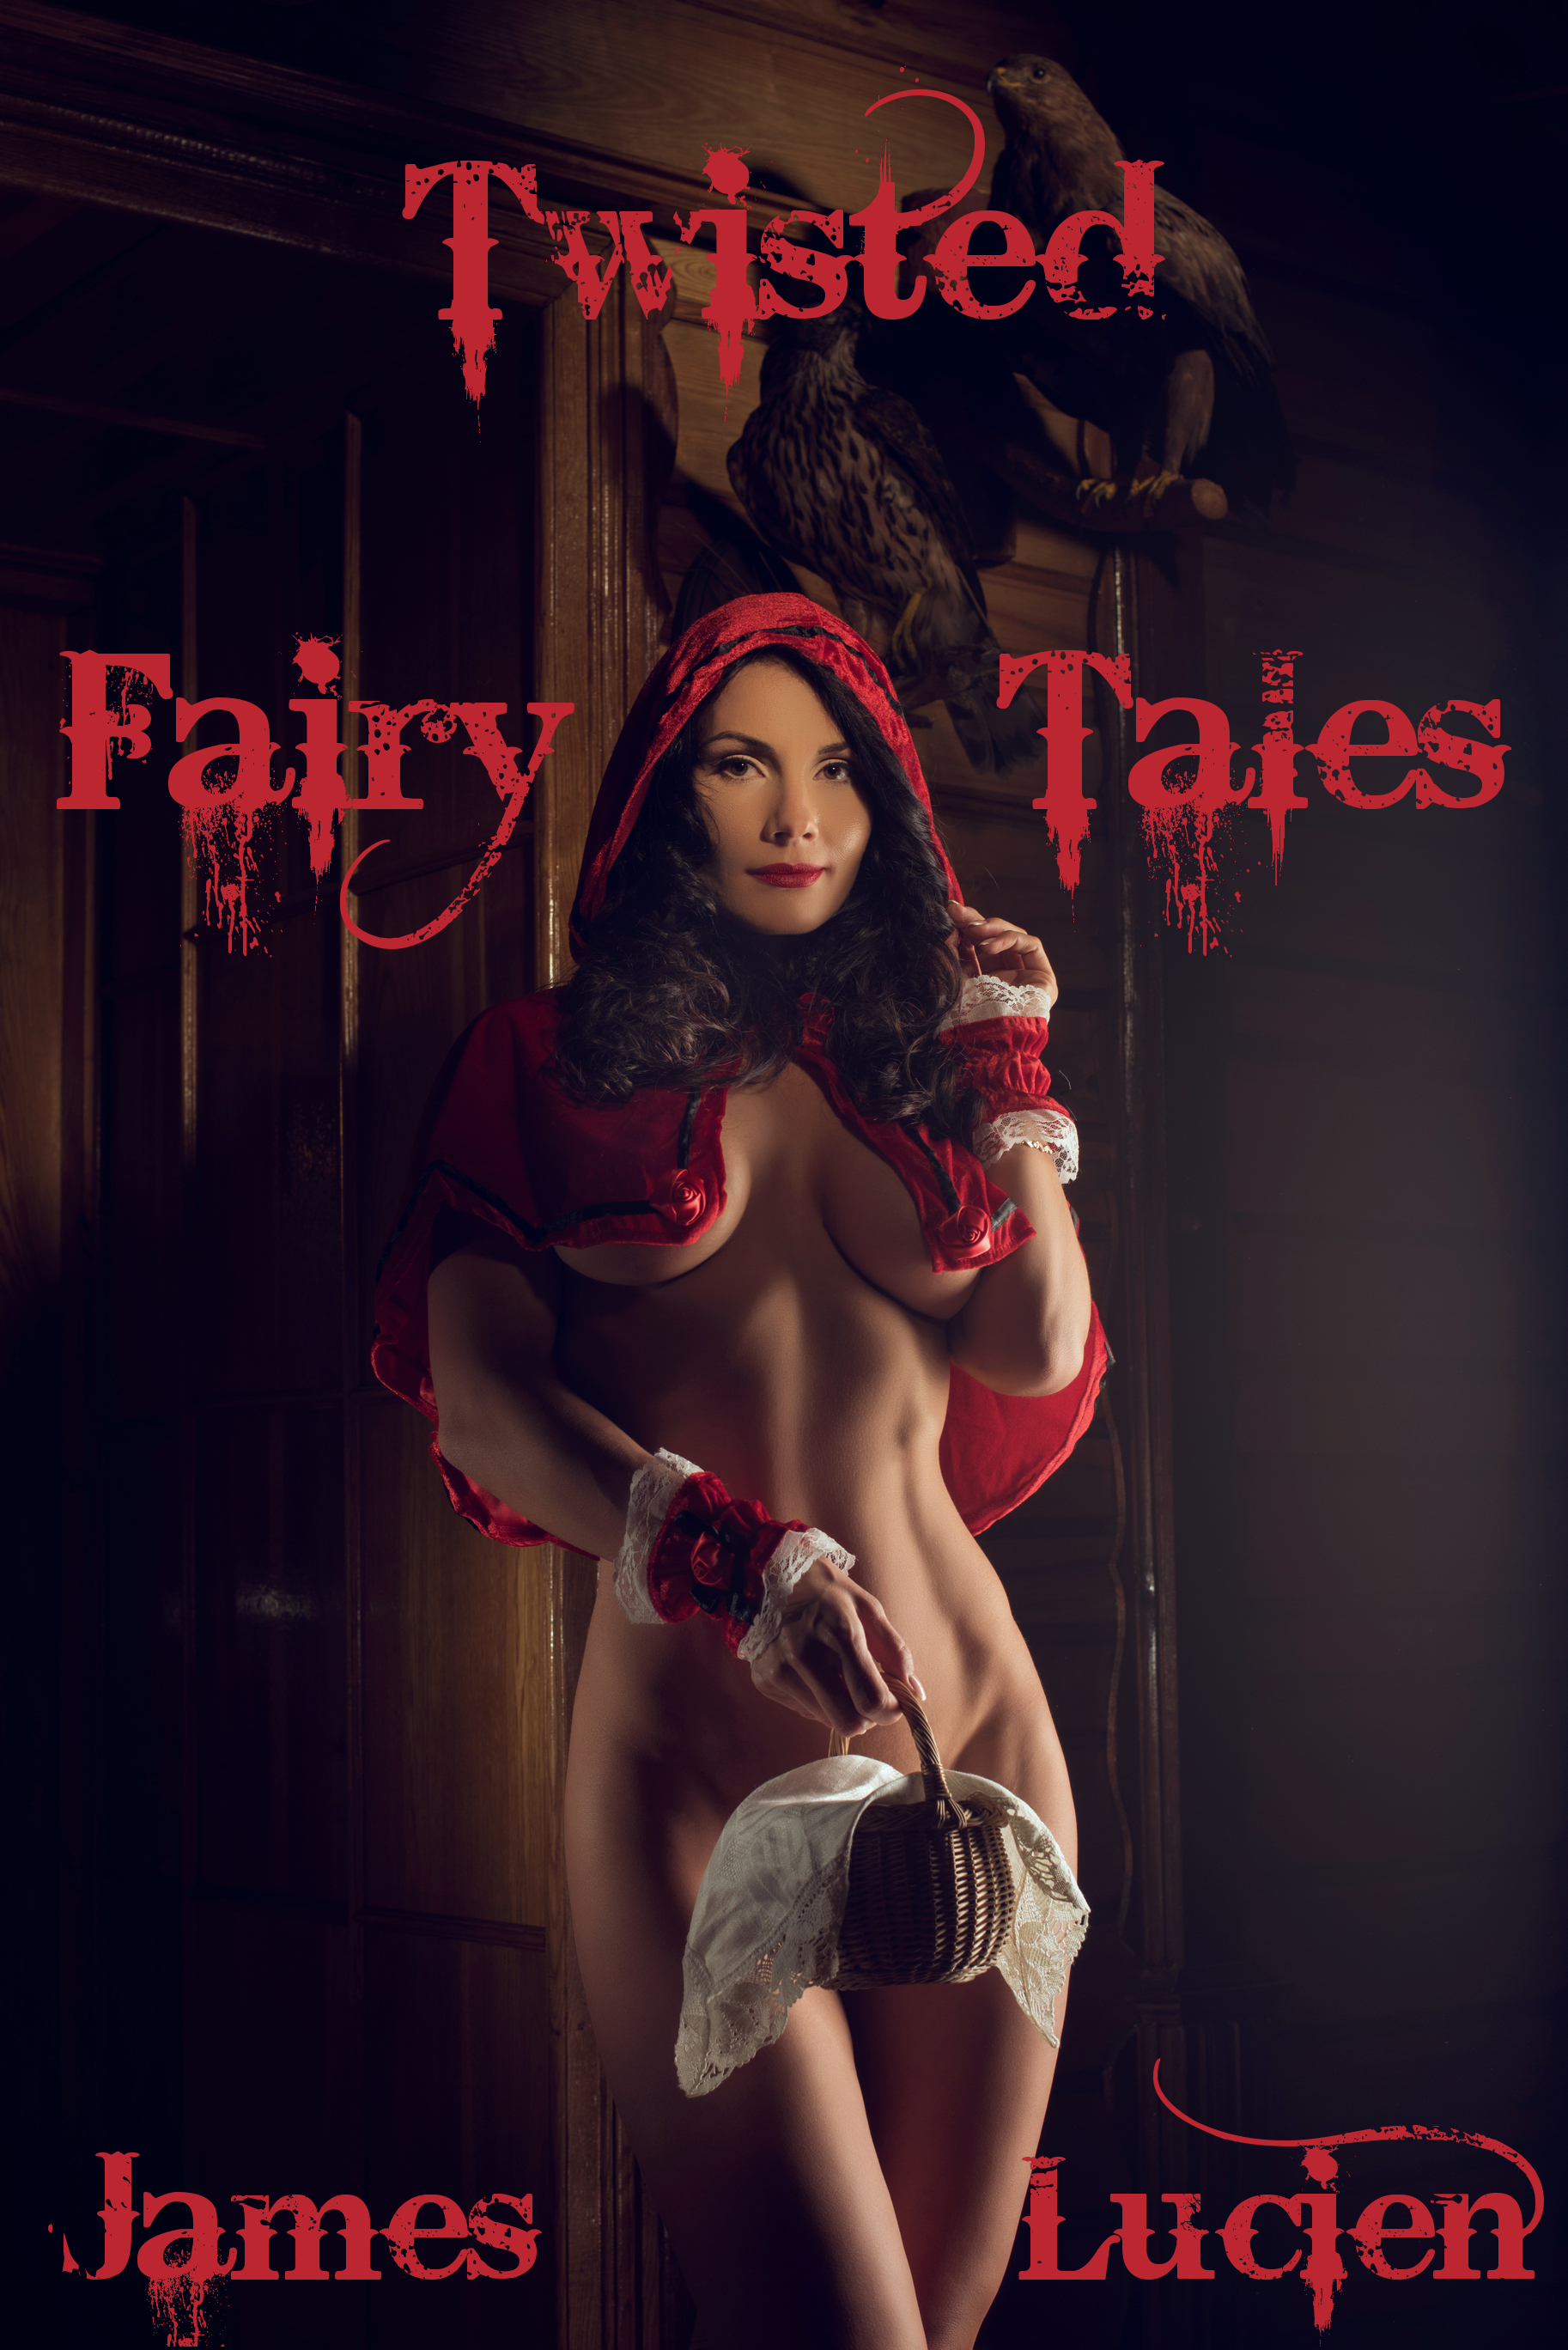 Twisted Fairy Tales James Lucien